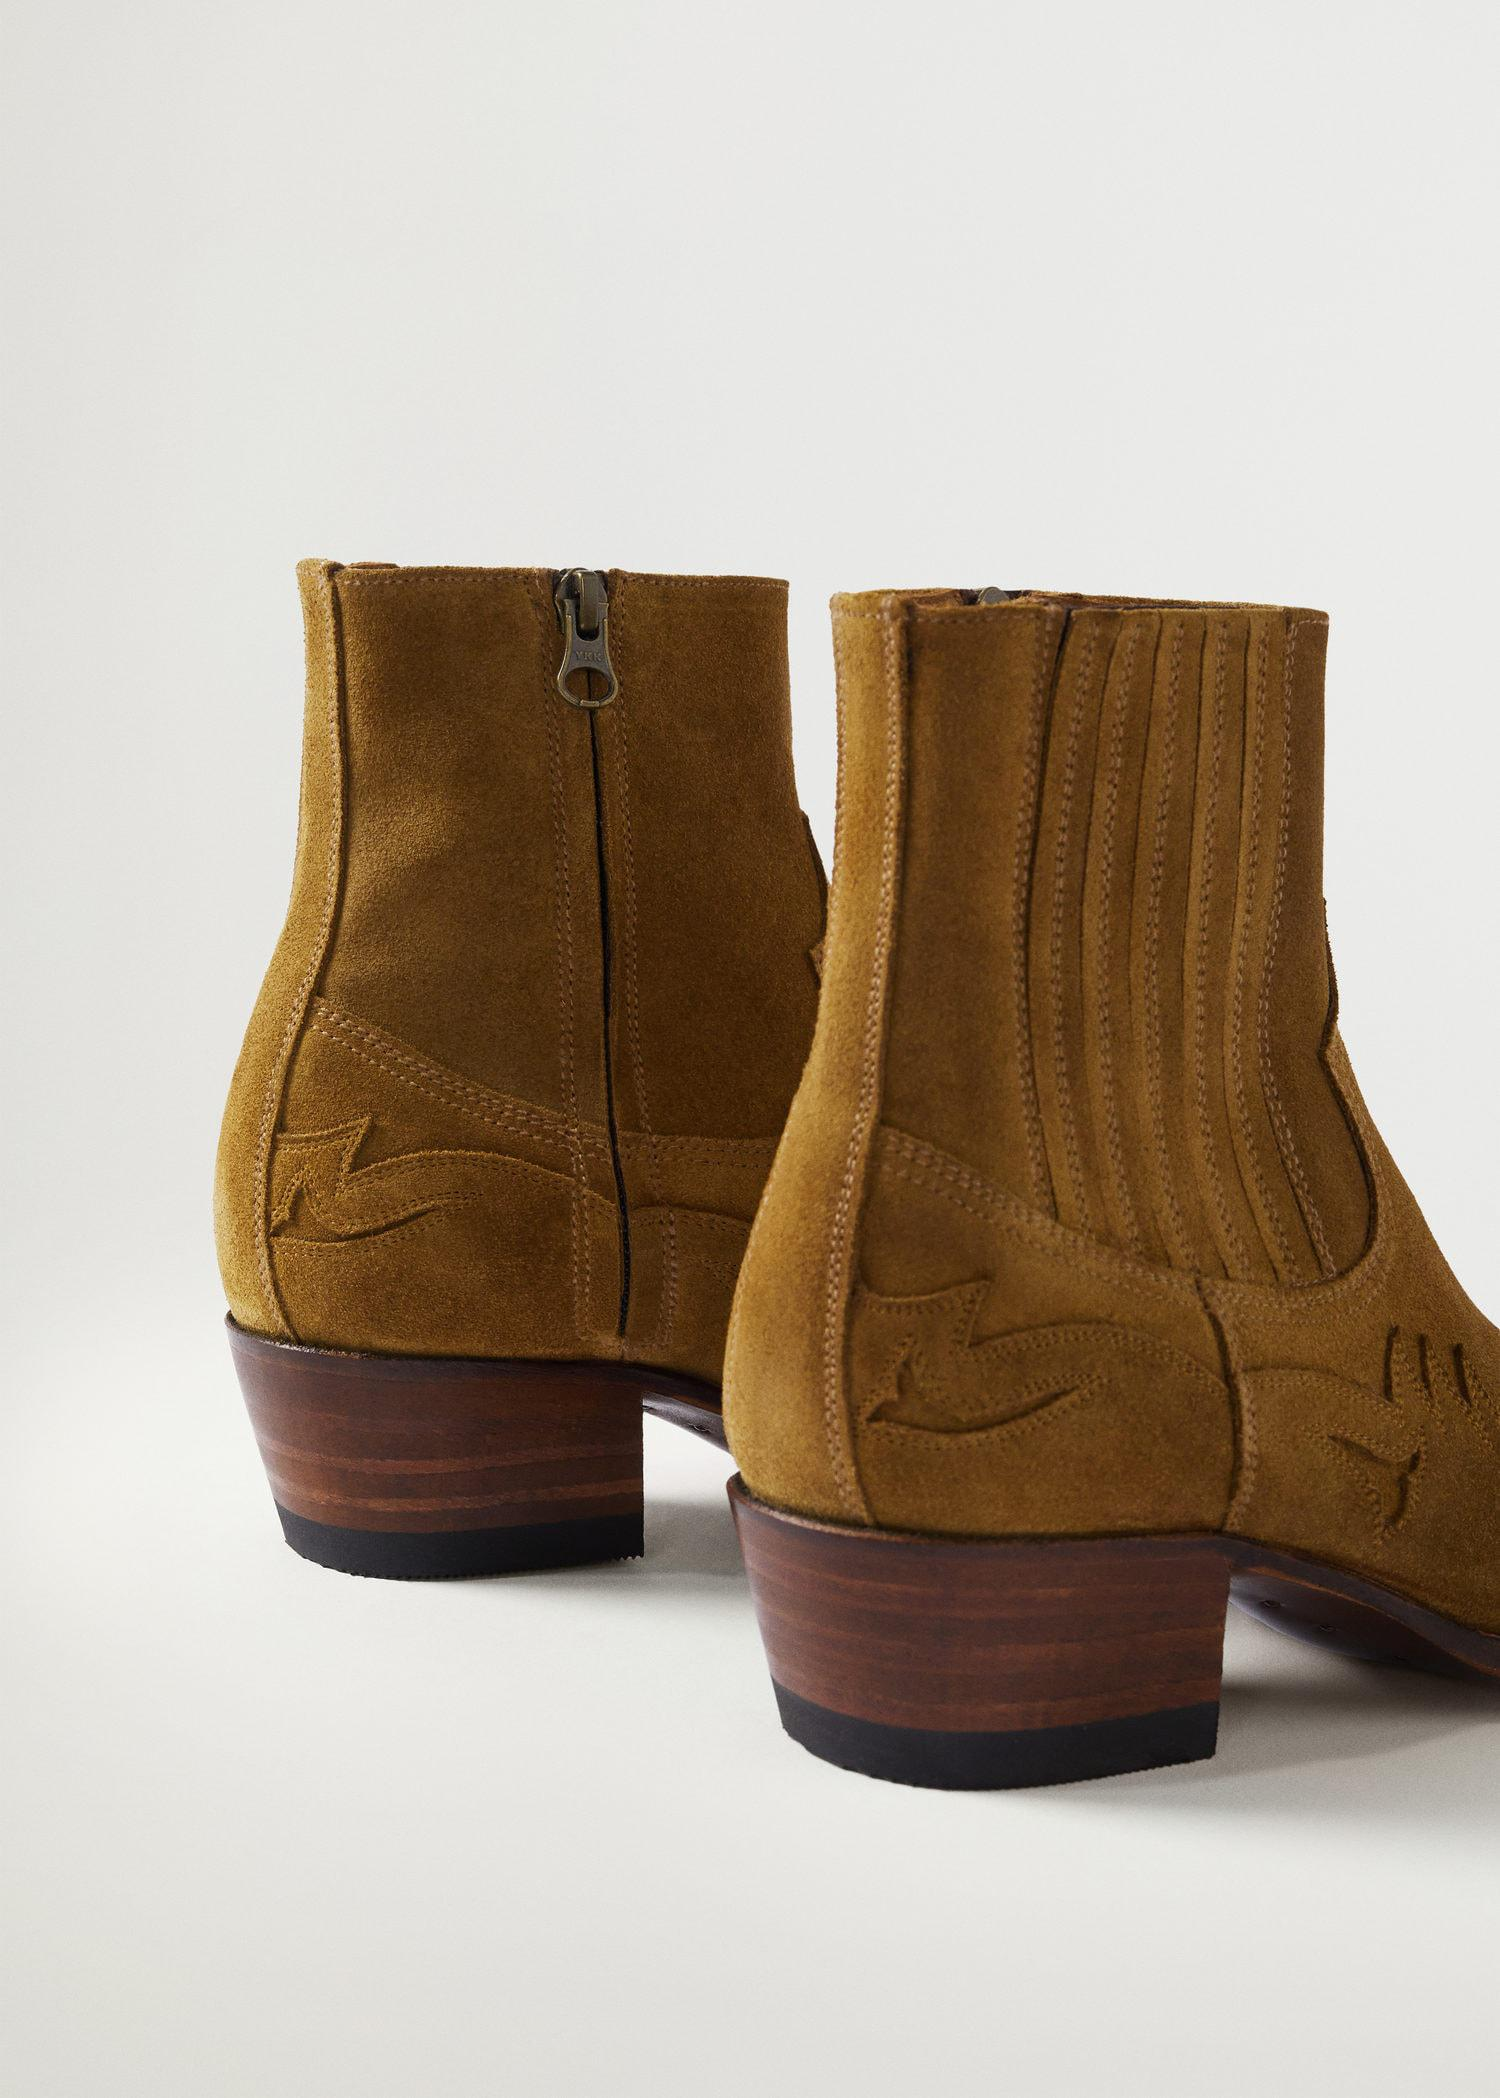 Goodyear welted leather boots 2